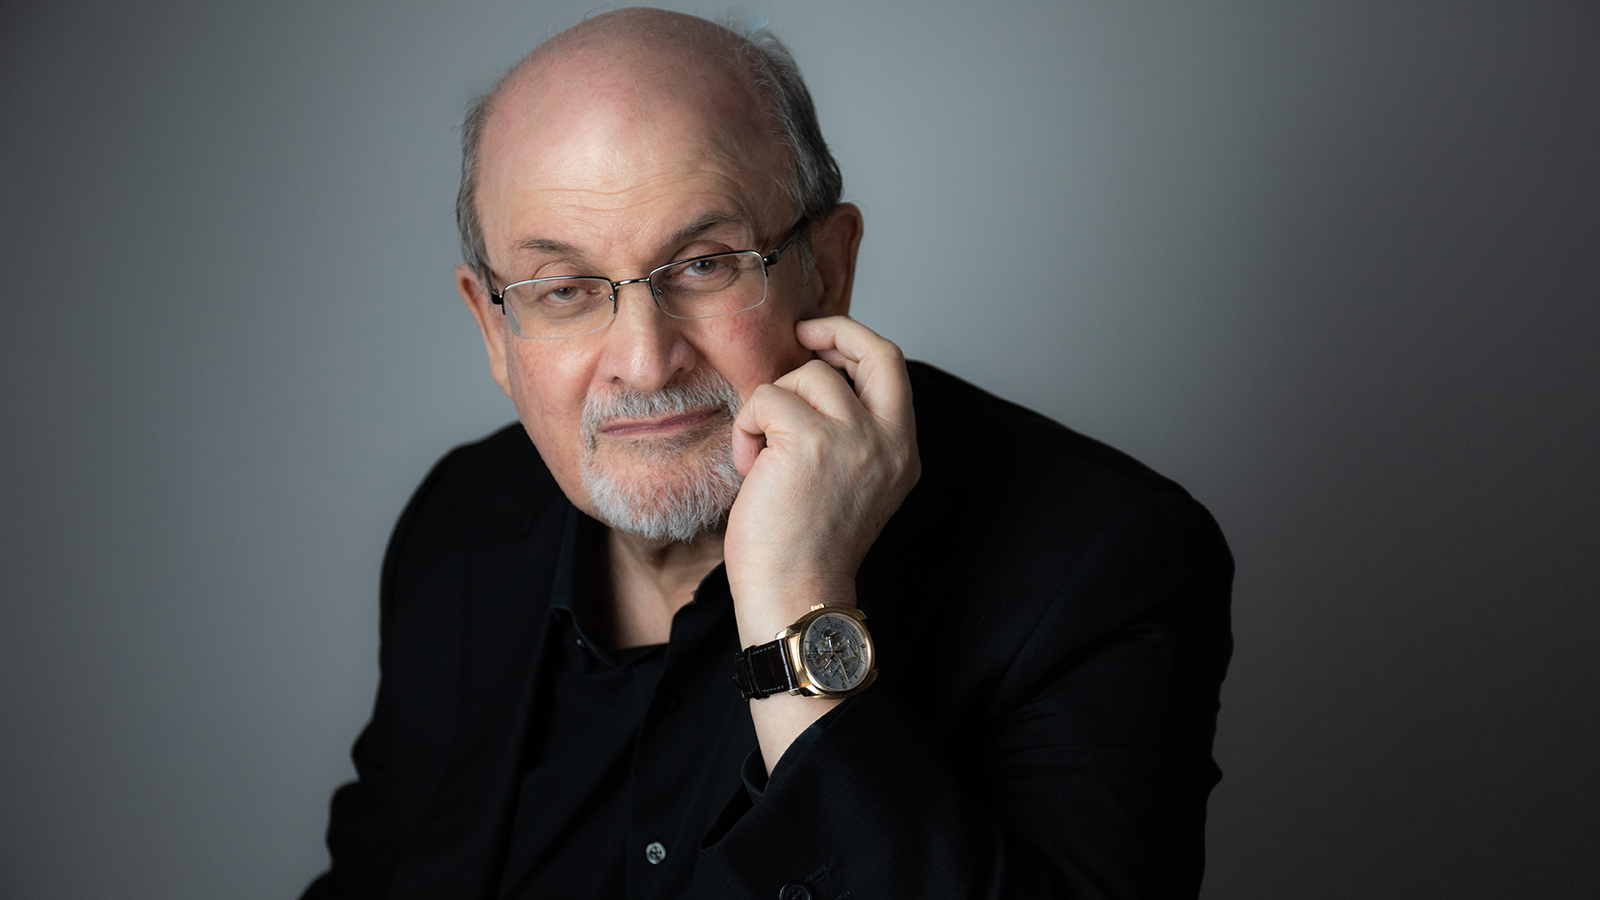 [Salman Rushdie] Photo by Rachel Eliza Griffith